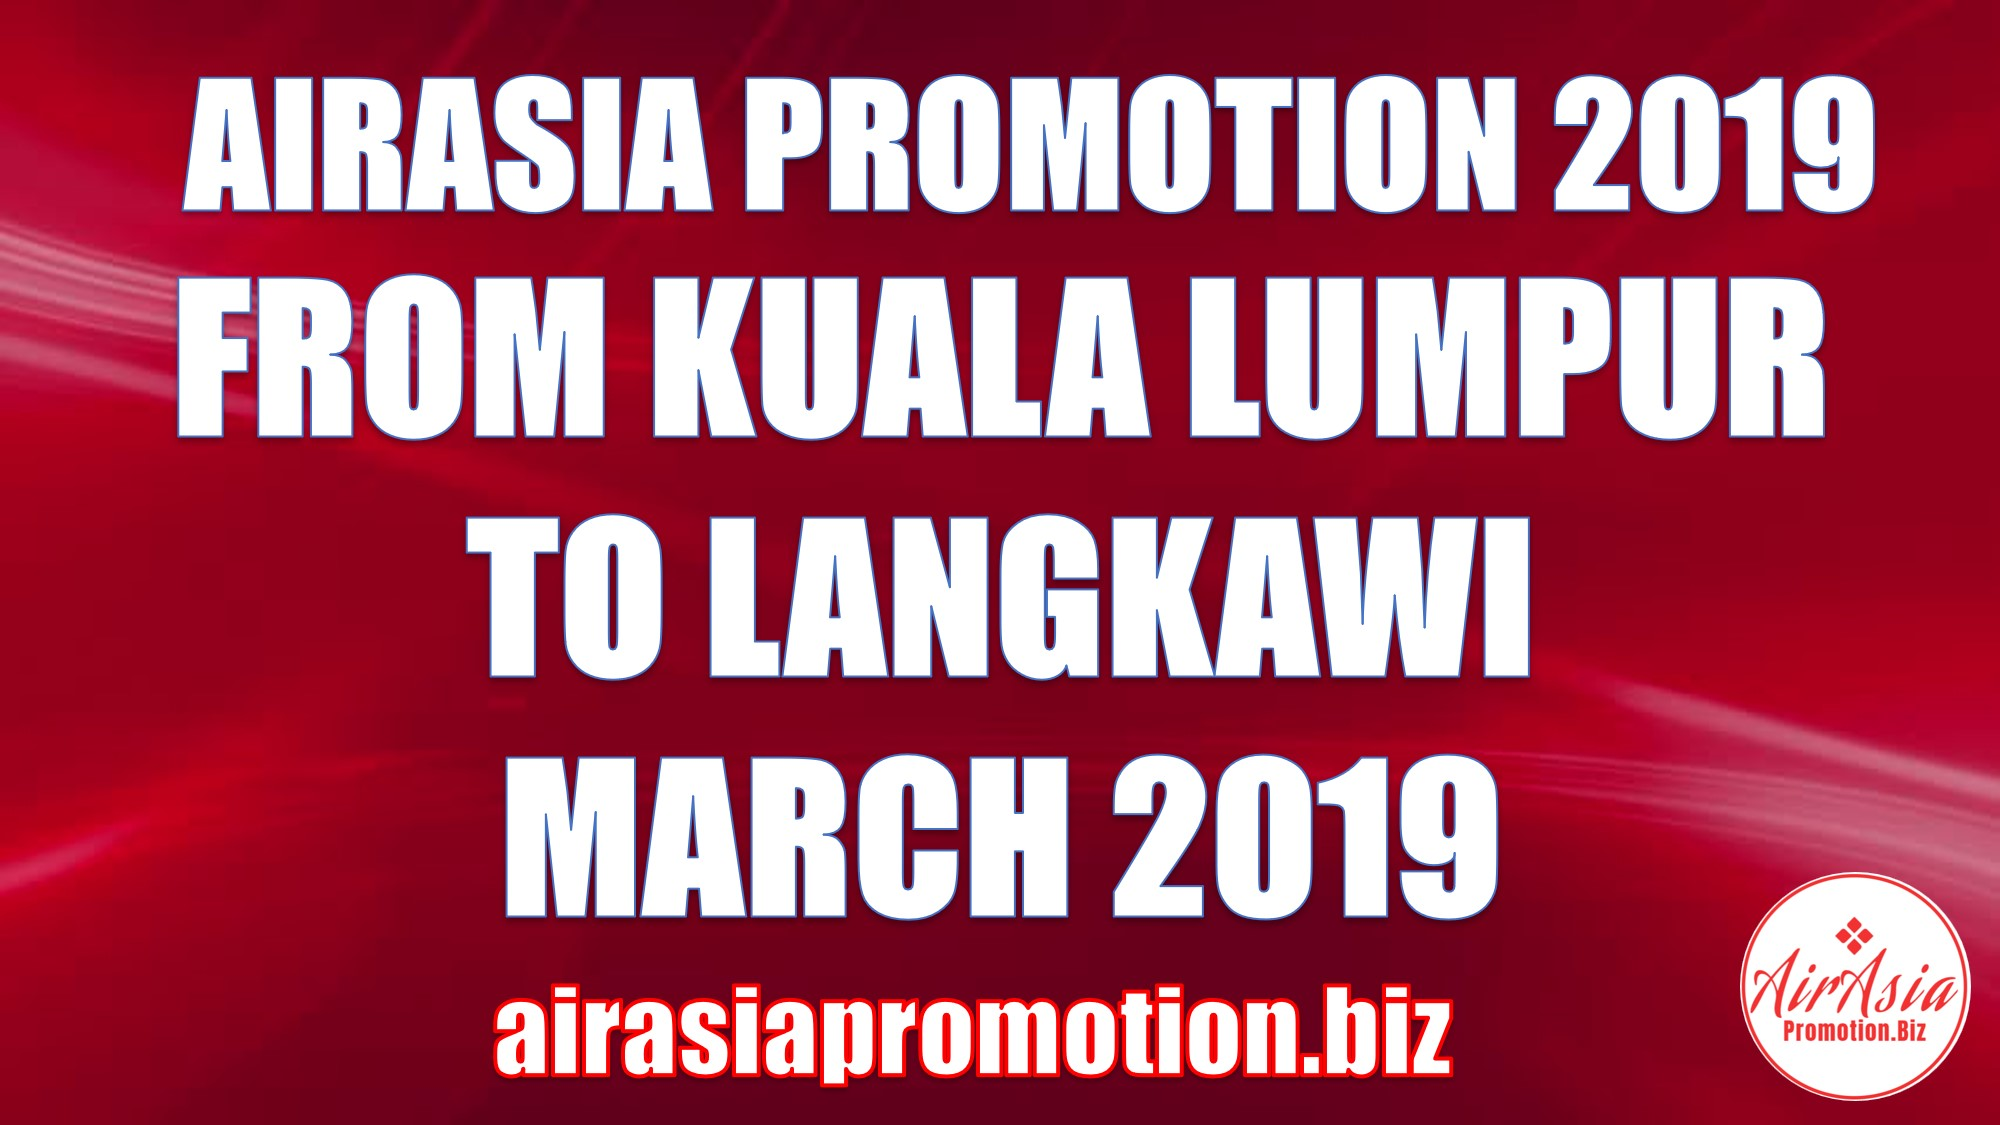 AirAsia Promotion From Kuala Lumpur To Langkawi March 2019